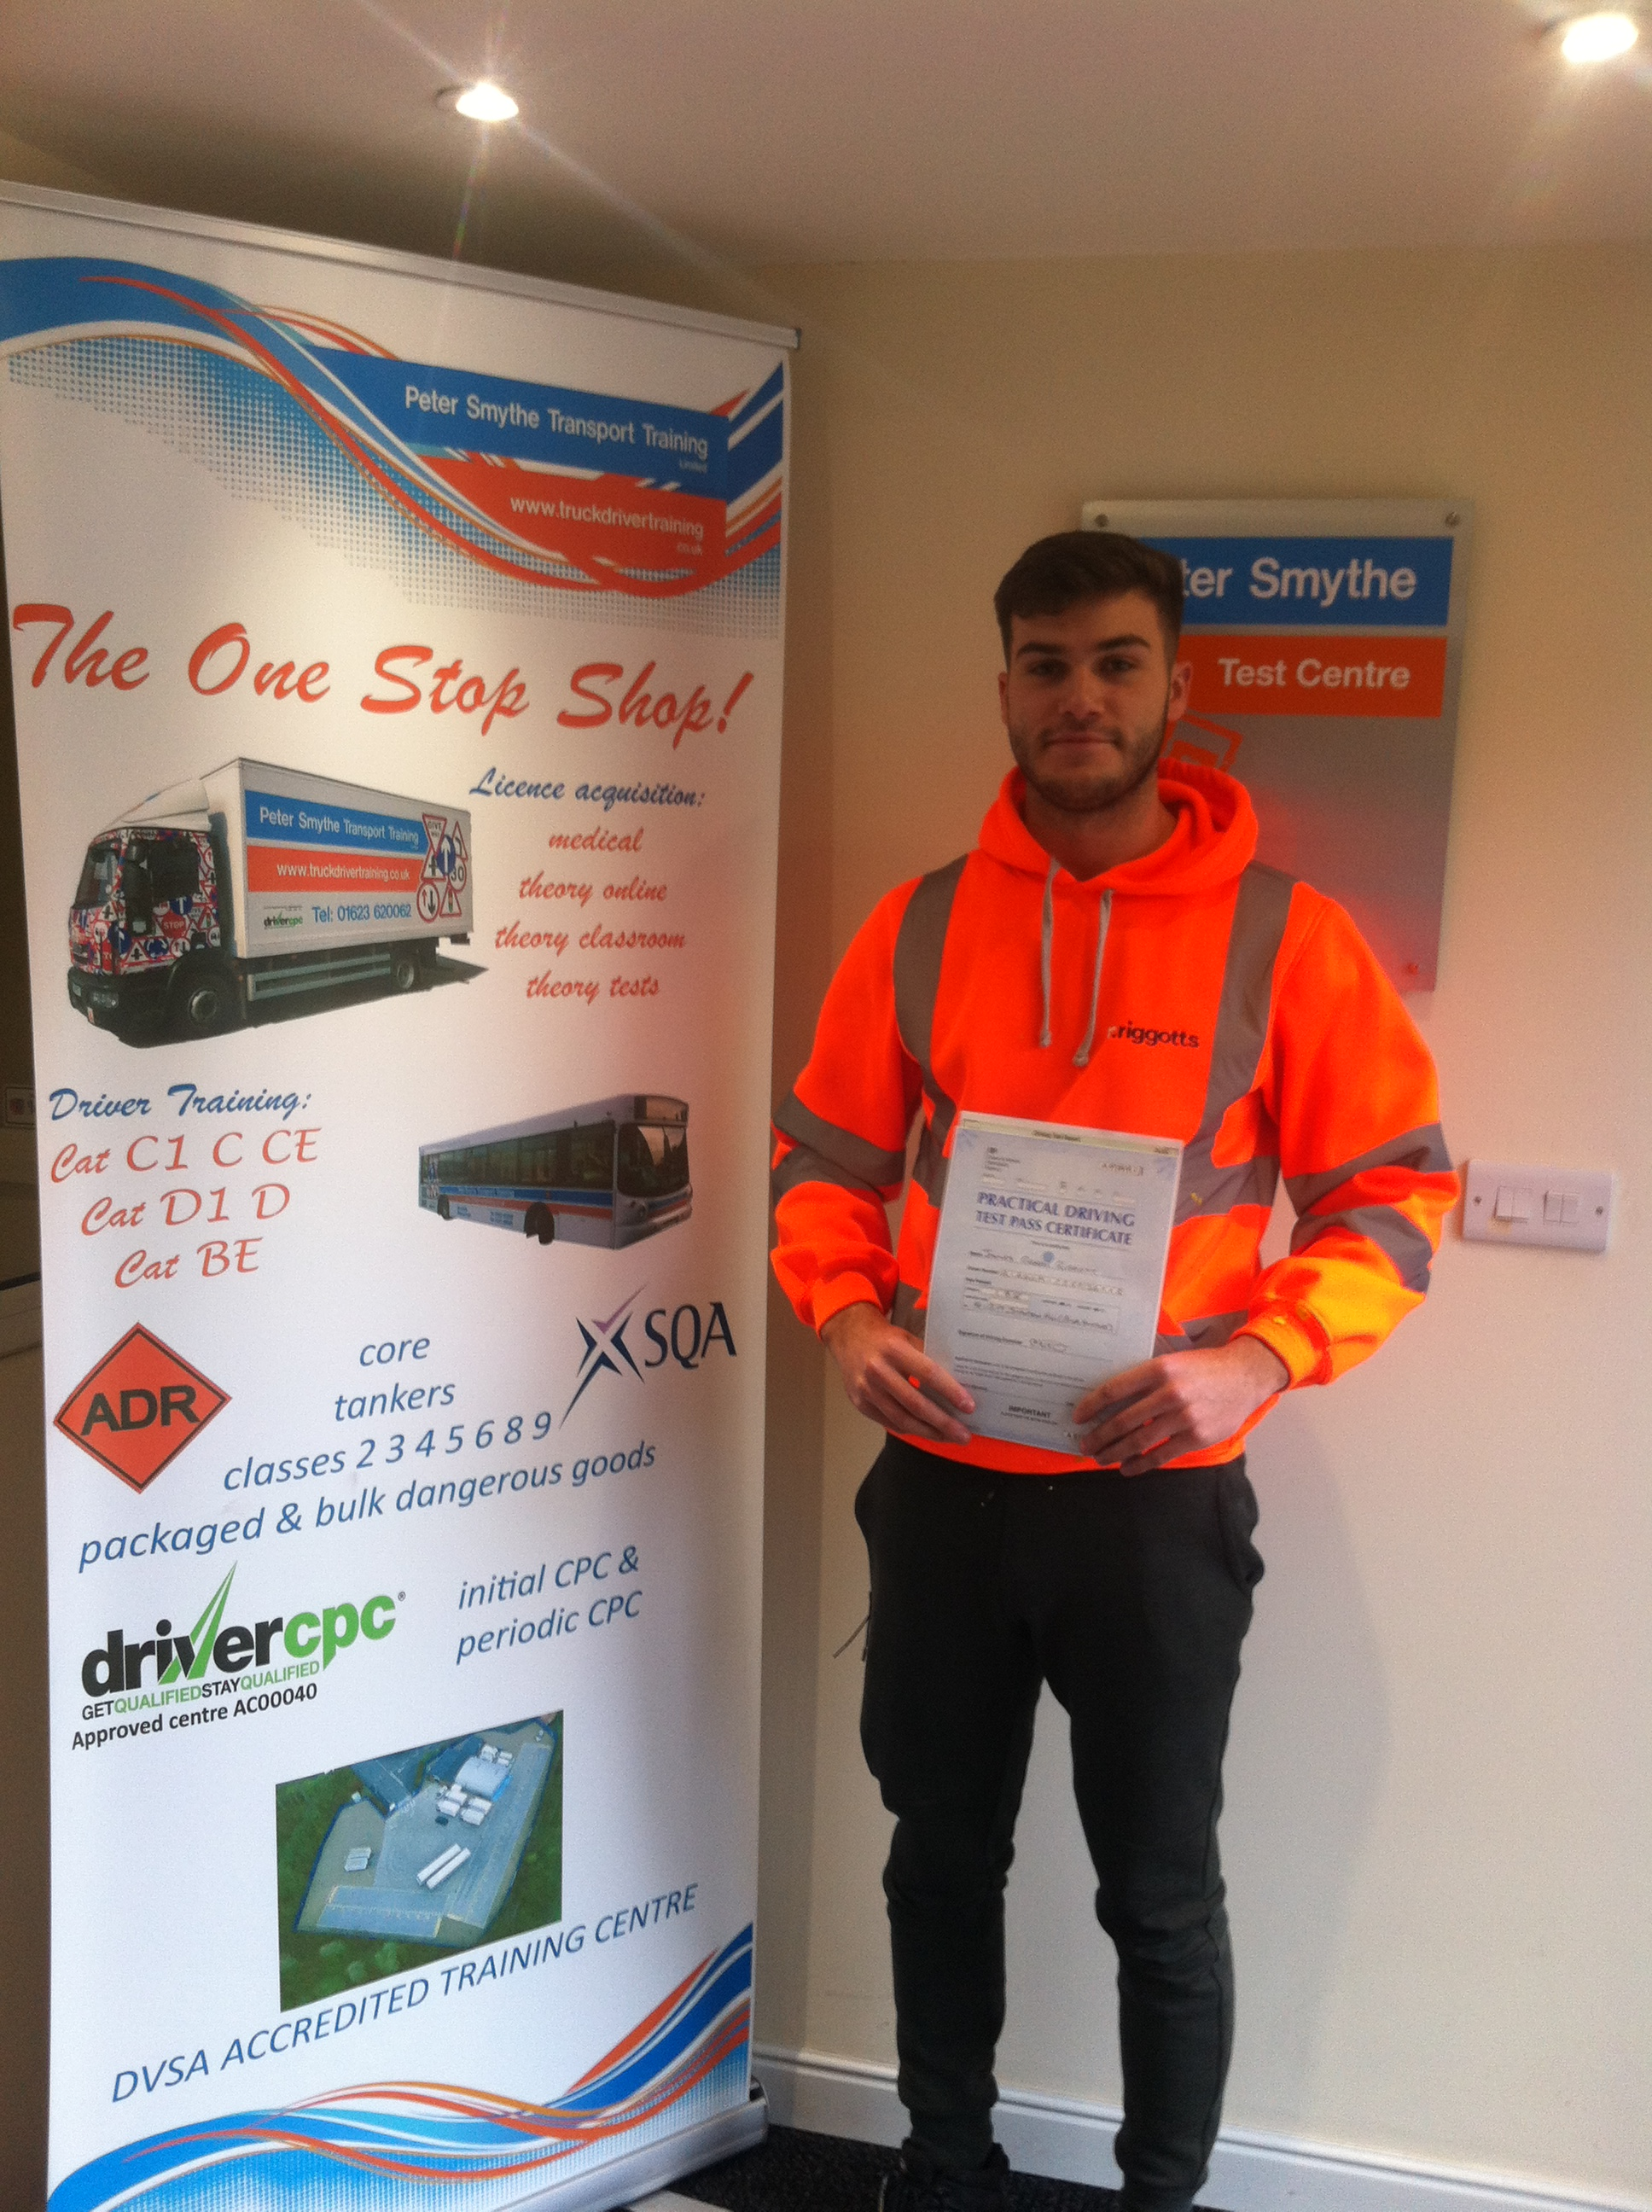 James Riggott from Newark passed Cat B+E